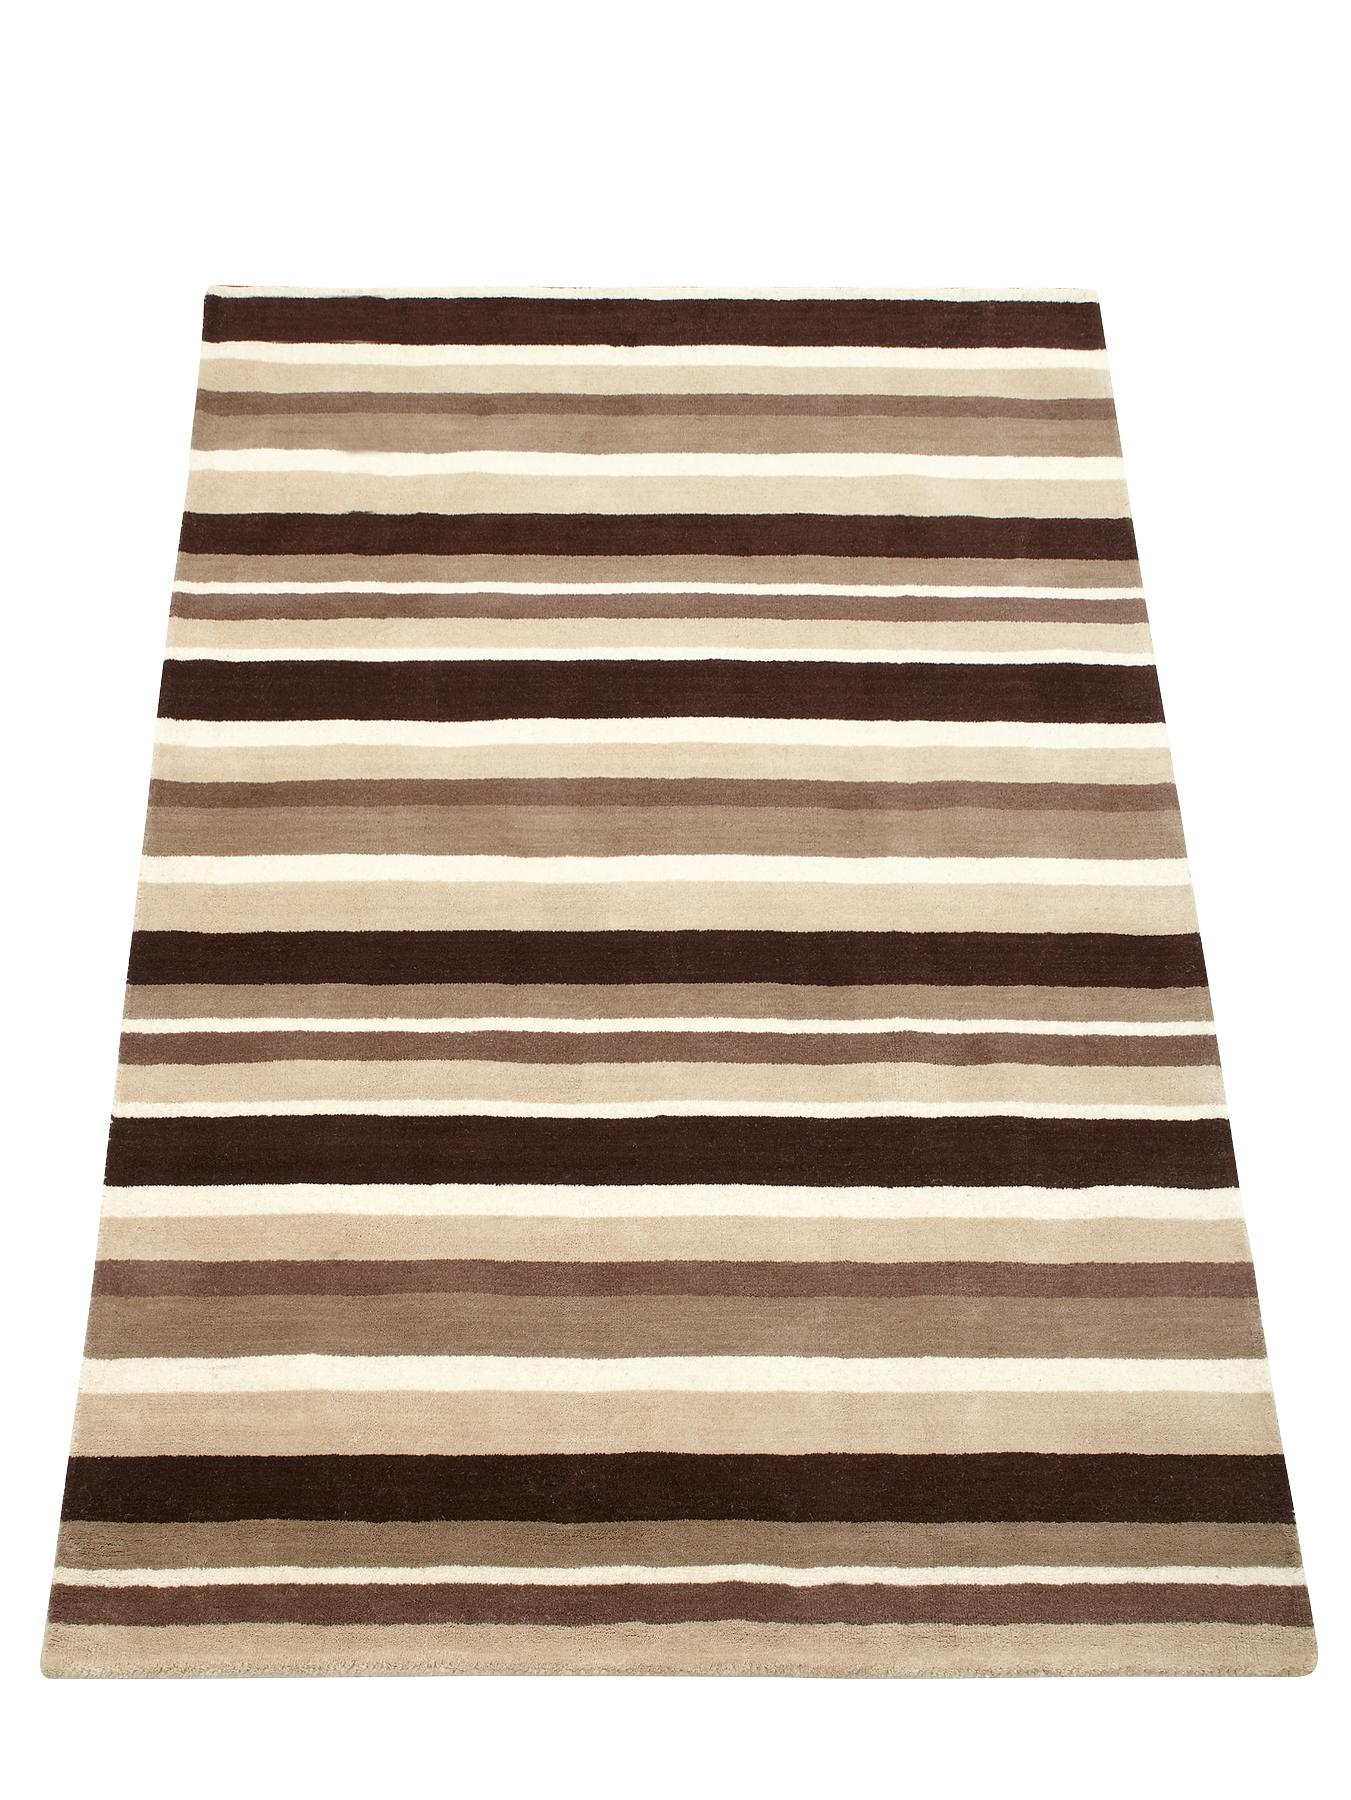 Carved Stripe Wool Rug, Red,Green